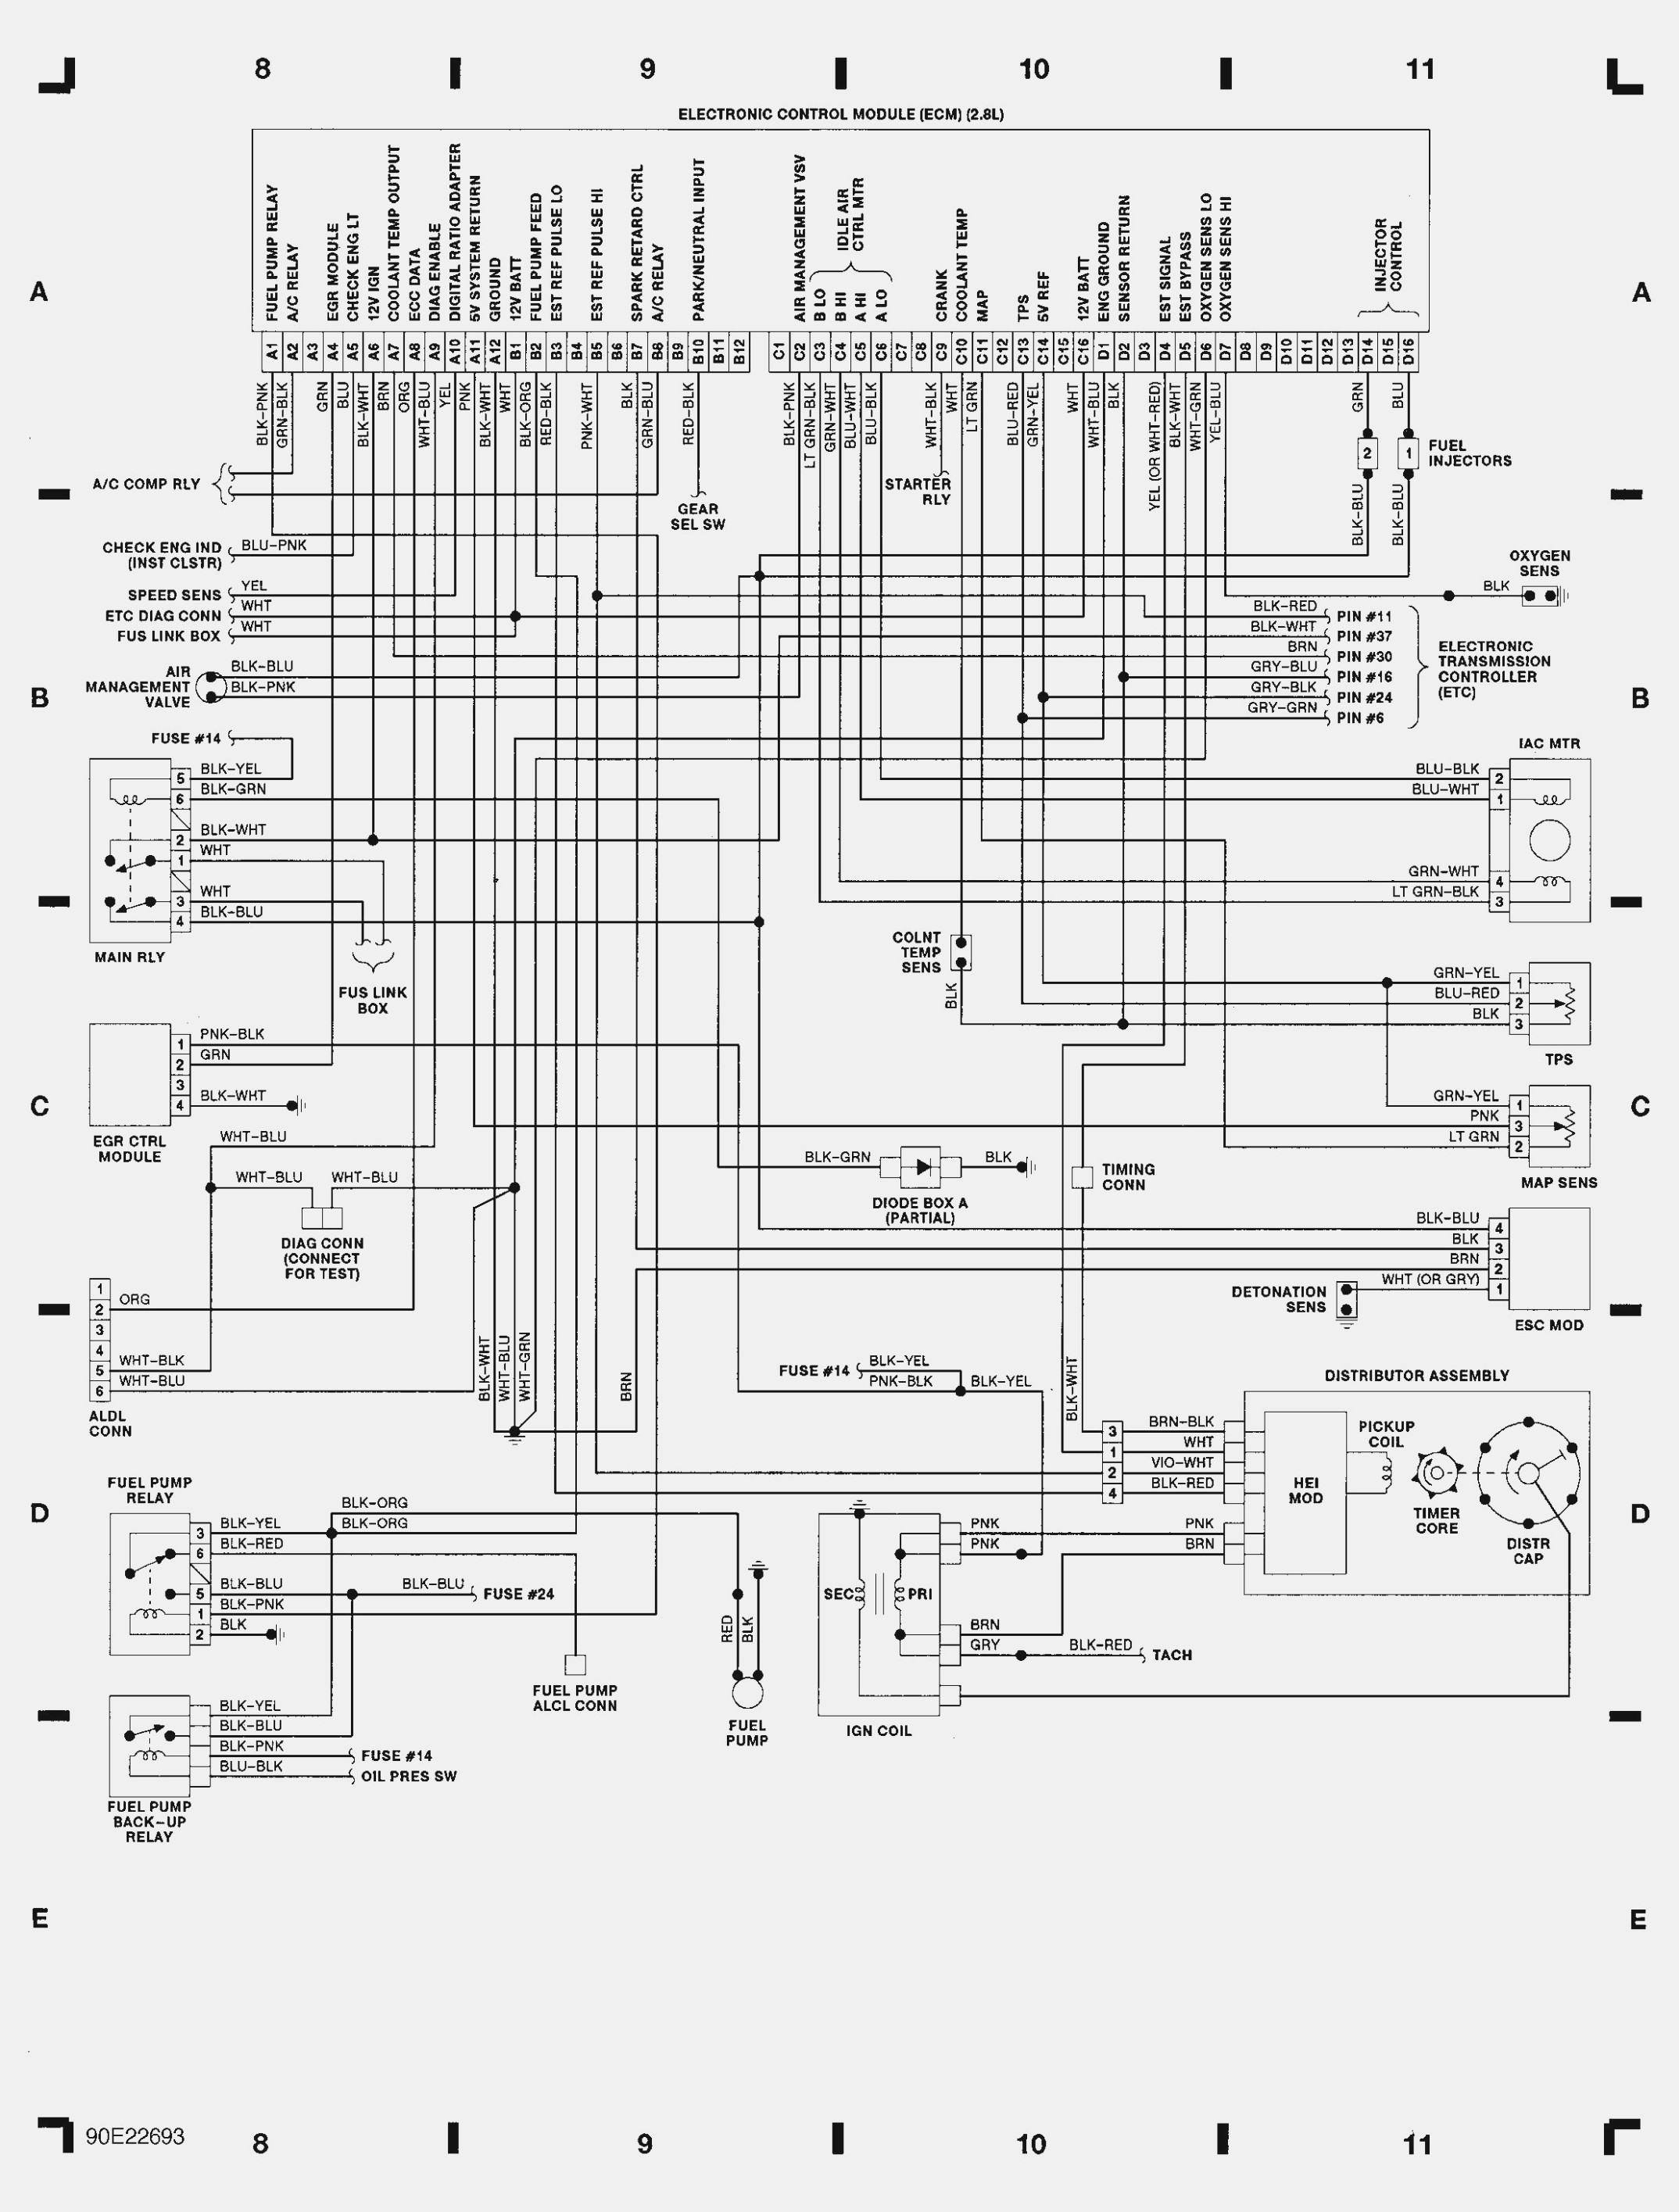 2002 isuzu Rodeo Engine Diagram isuzu Engine Diagrams Of 2002 isuzu Rodeo Engine Diagram